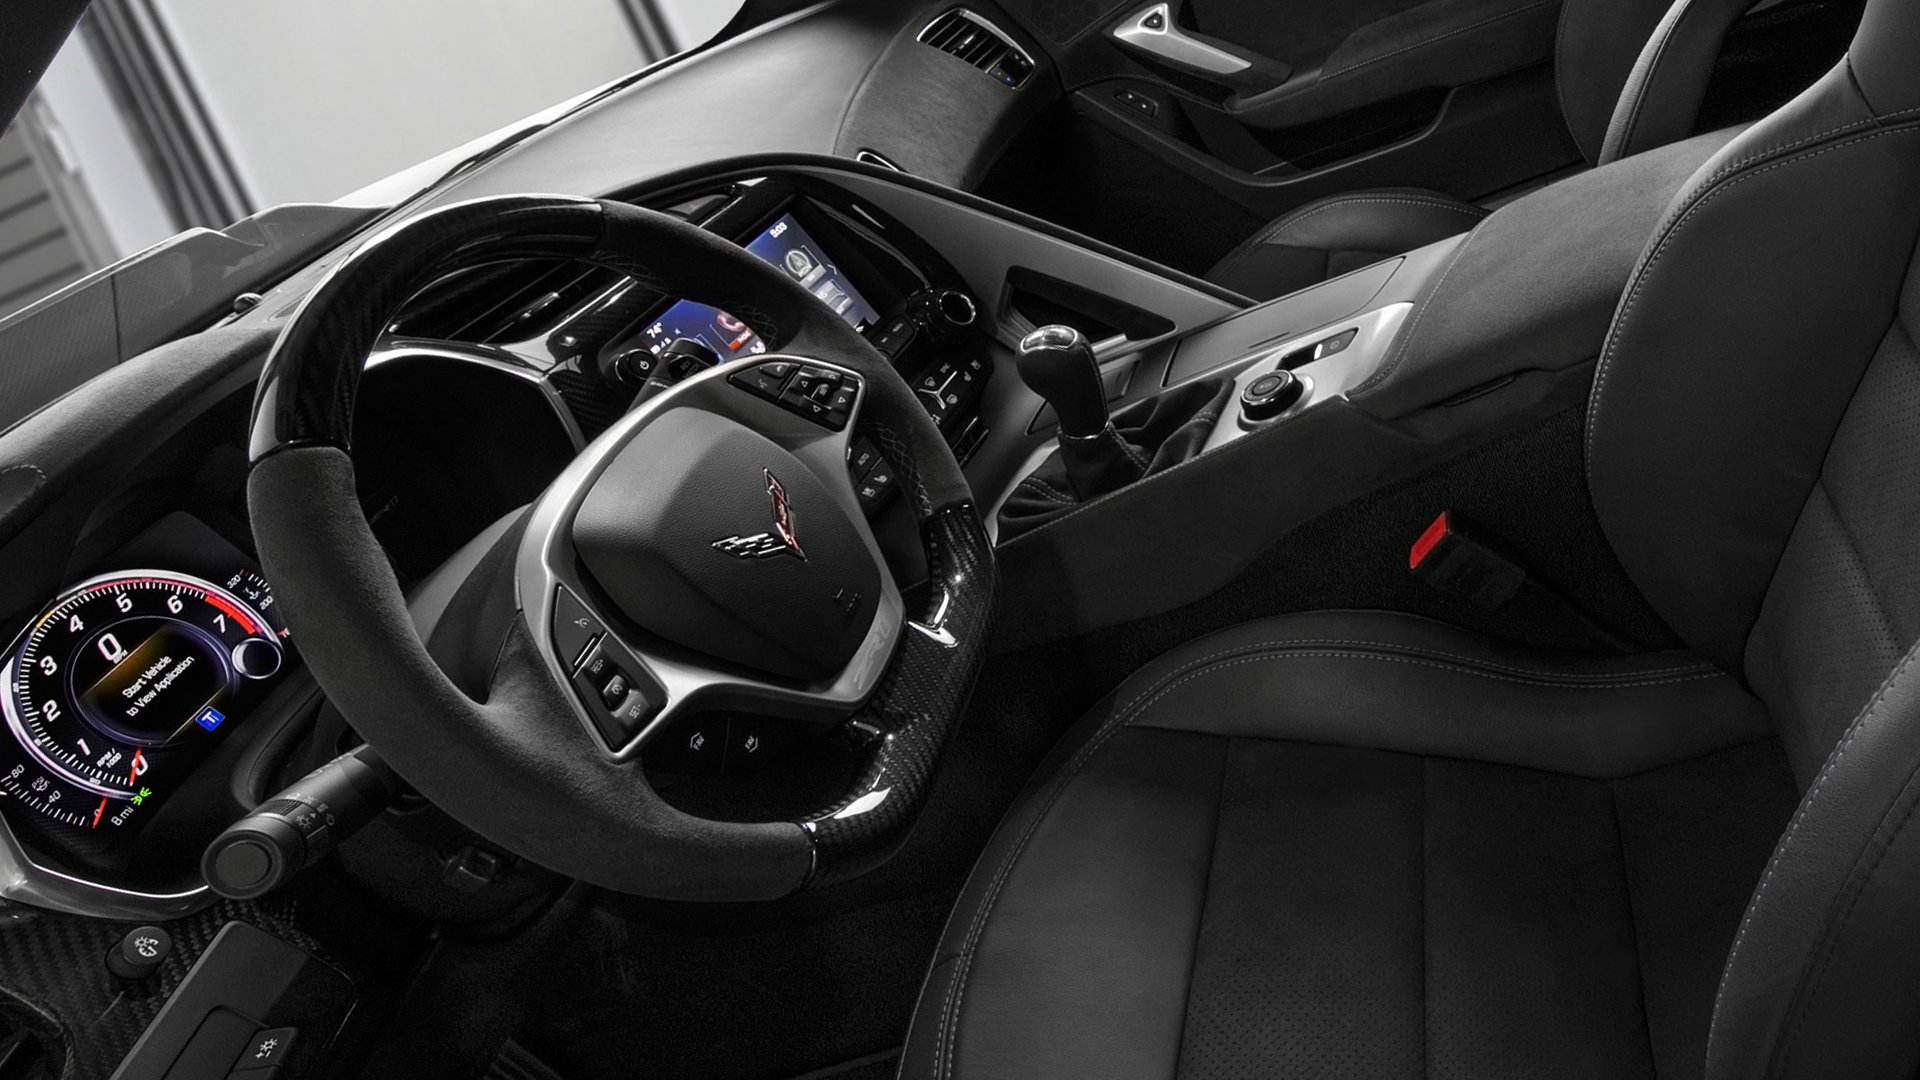 2019 Chevrolet Corvette Dashboard HD